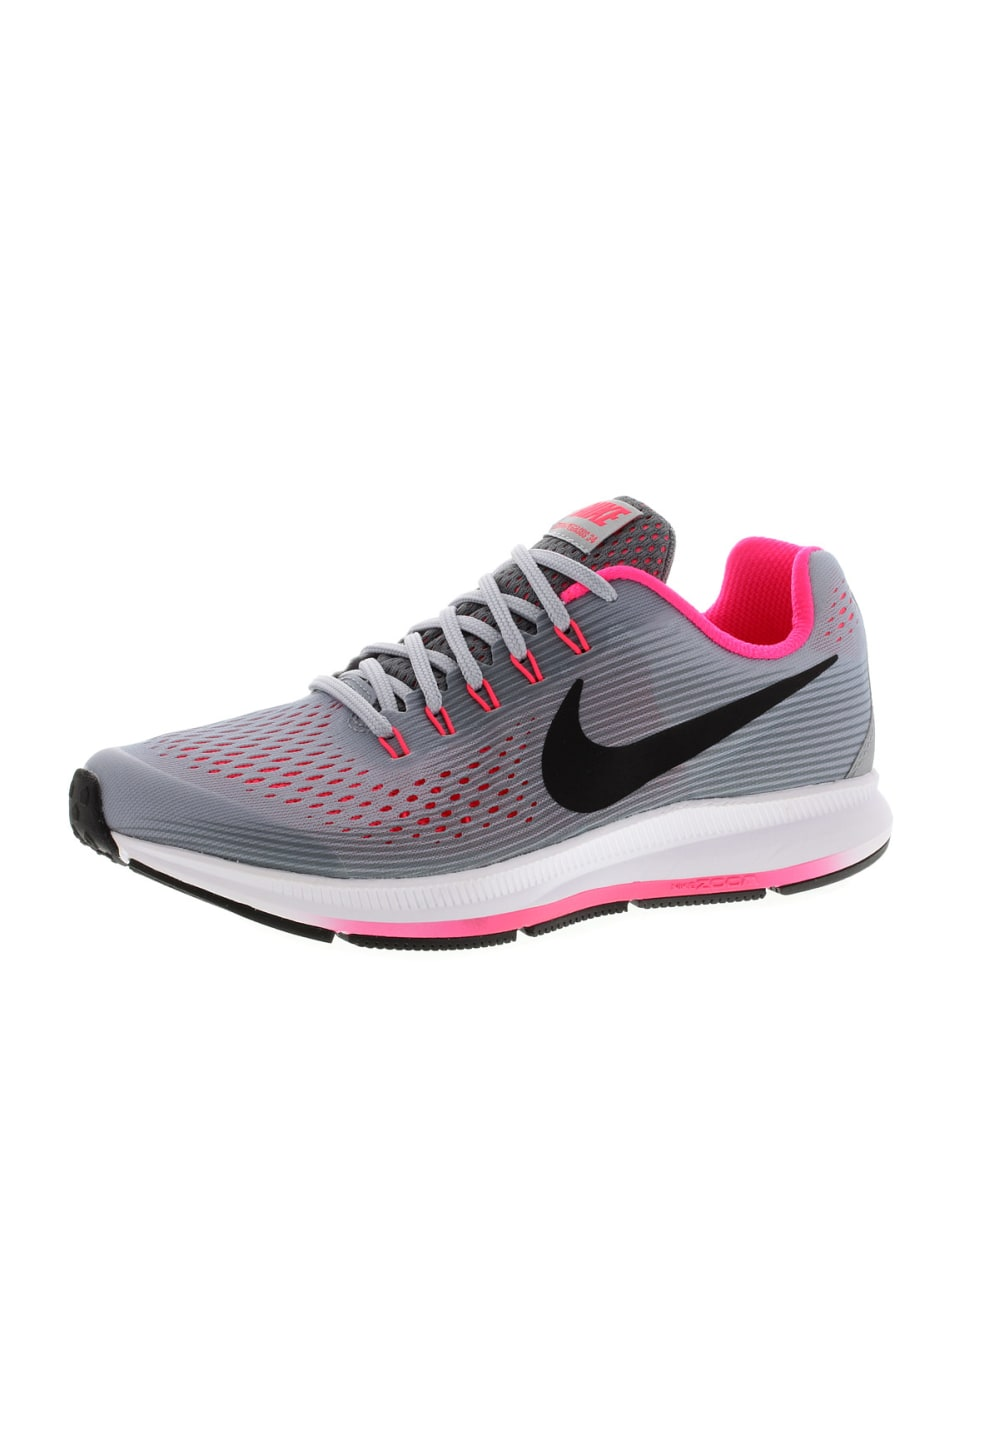 new product f5d40 09669 Nike Girls Zoom Pegasus 34 GS - Running shoes - Grey